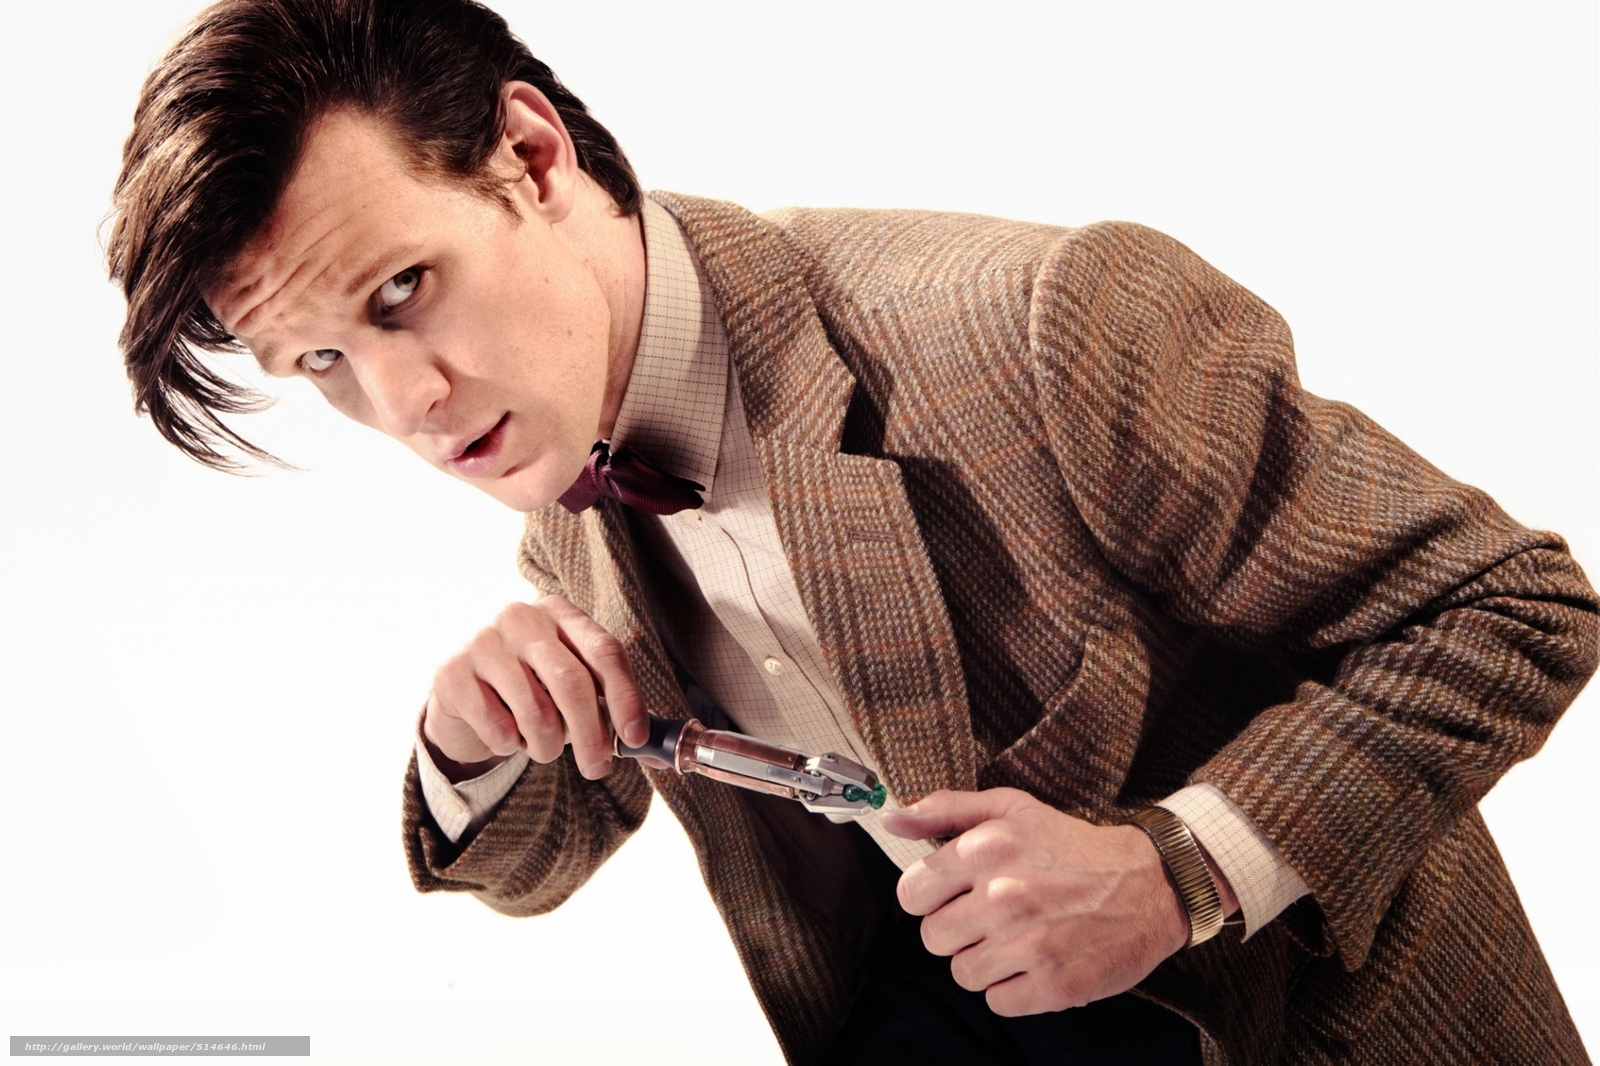 Download wallpaper Matt Smith man white background 1600x1066